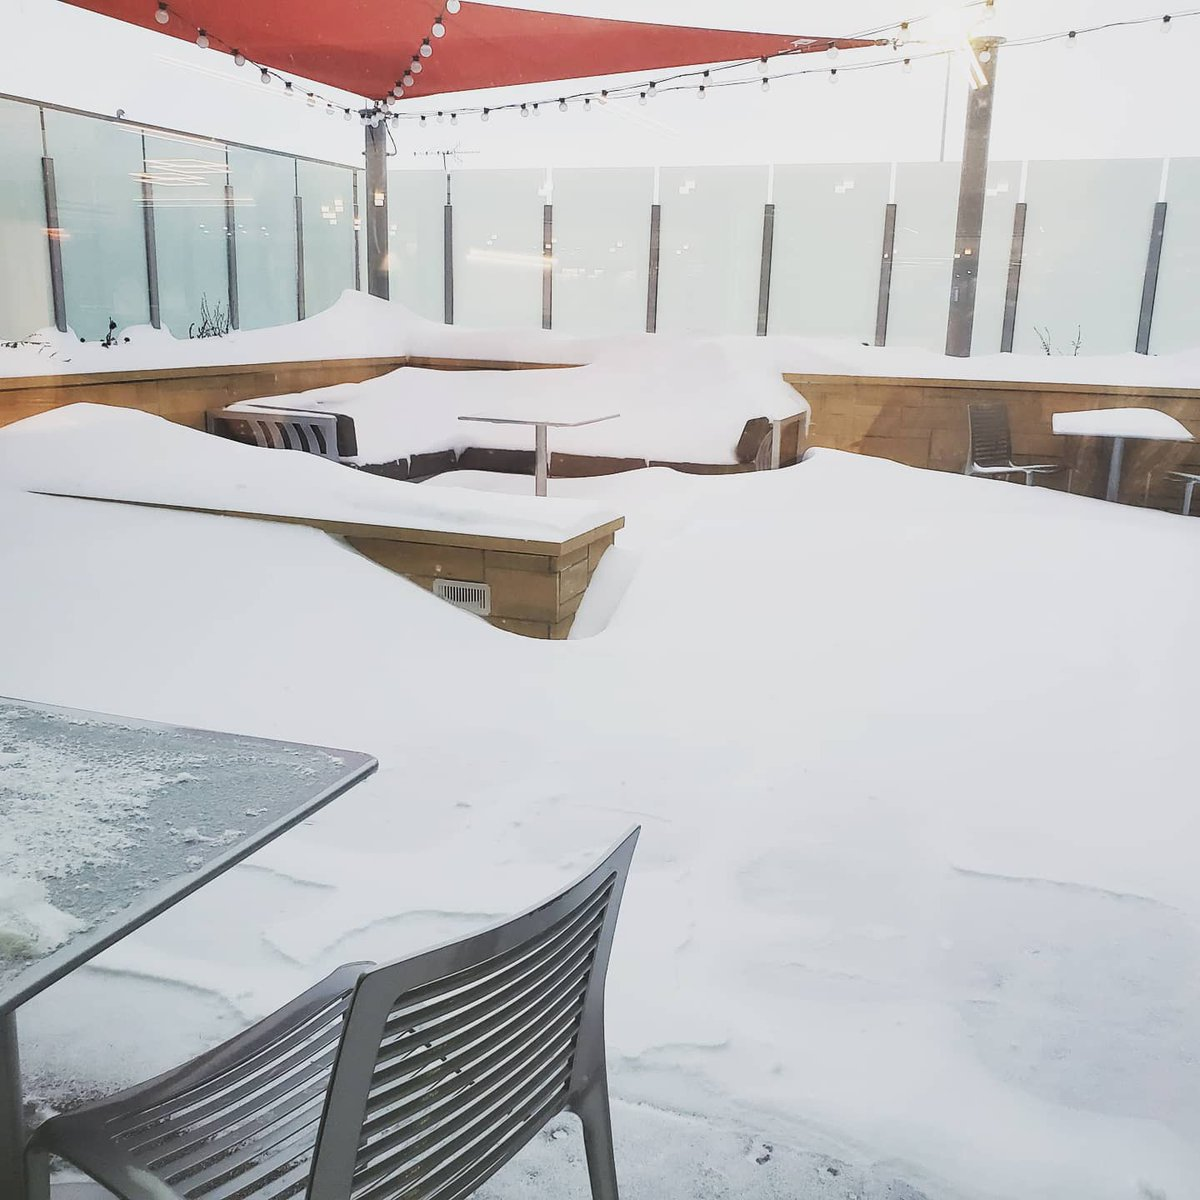 It is definitely not a patio day. Dreaming of sunshine and the beach. #Flylocal #flyCID #PlanForVacation